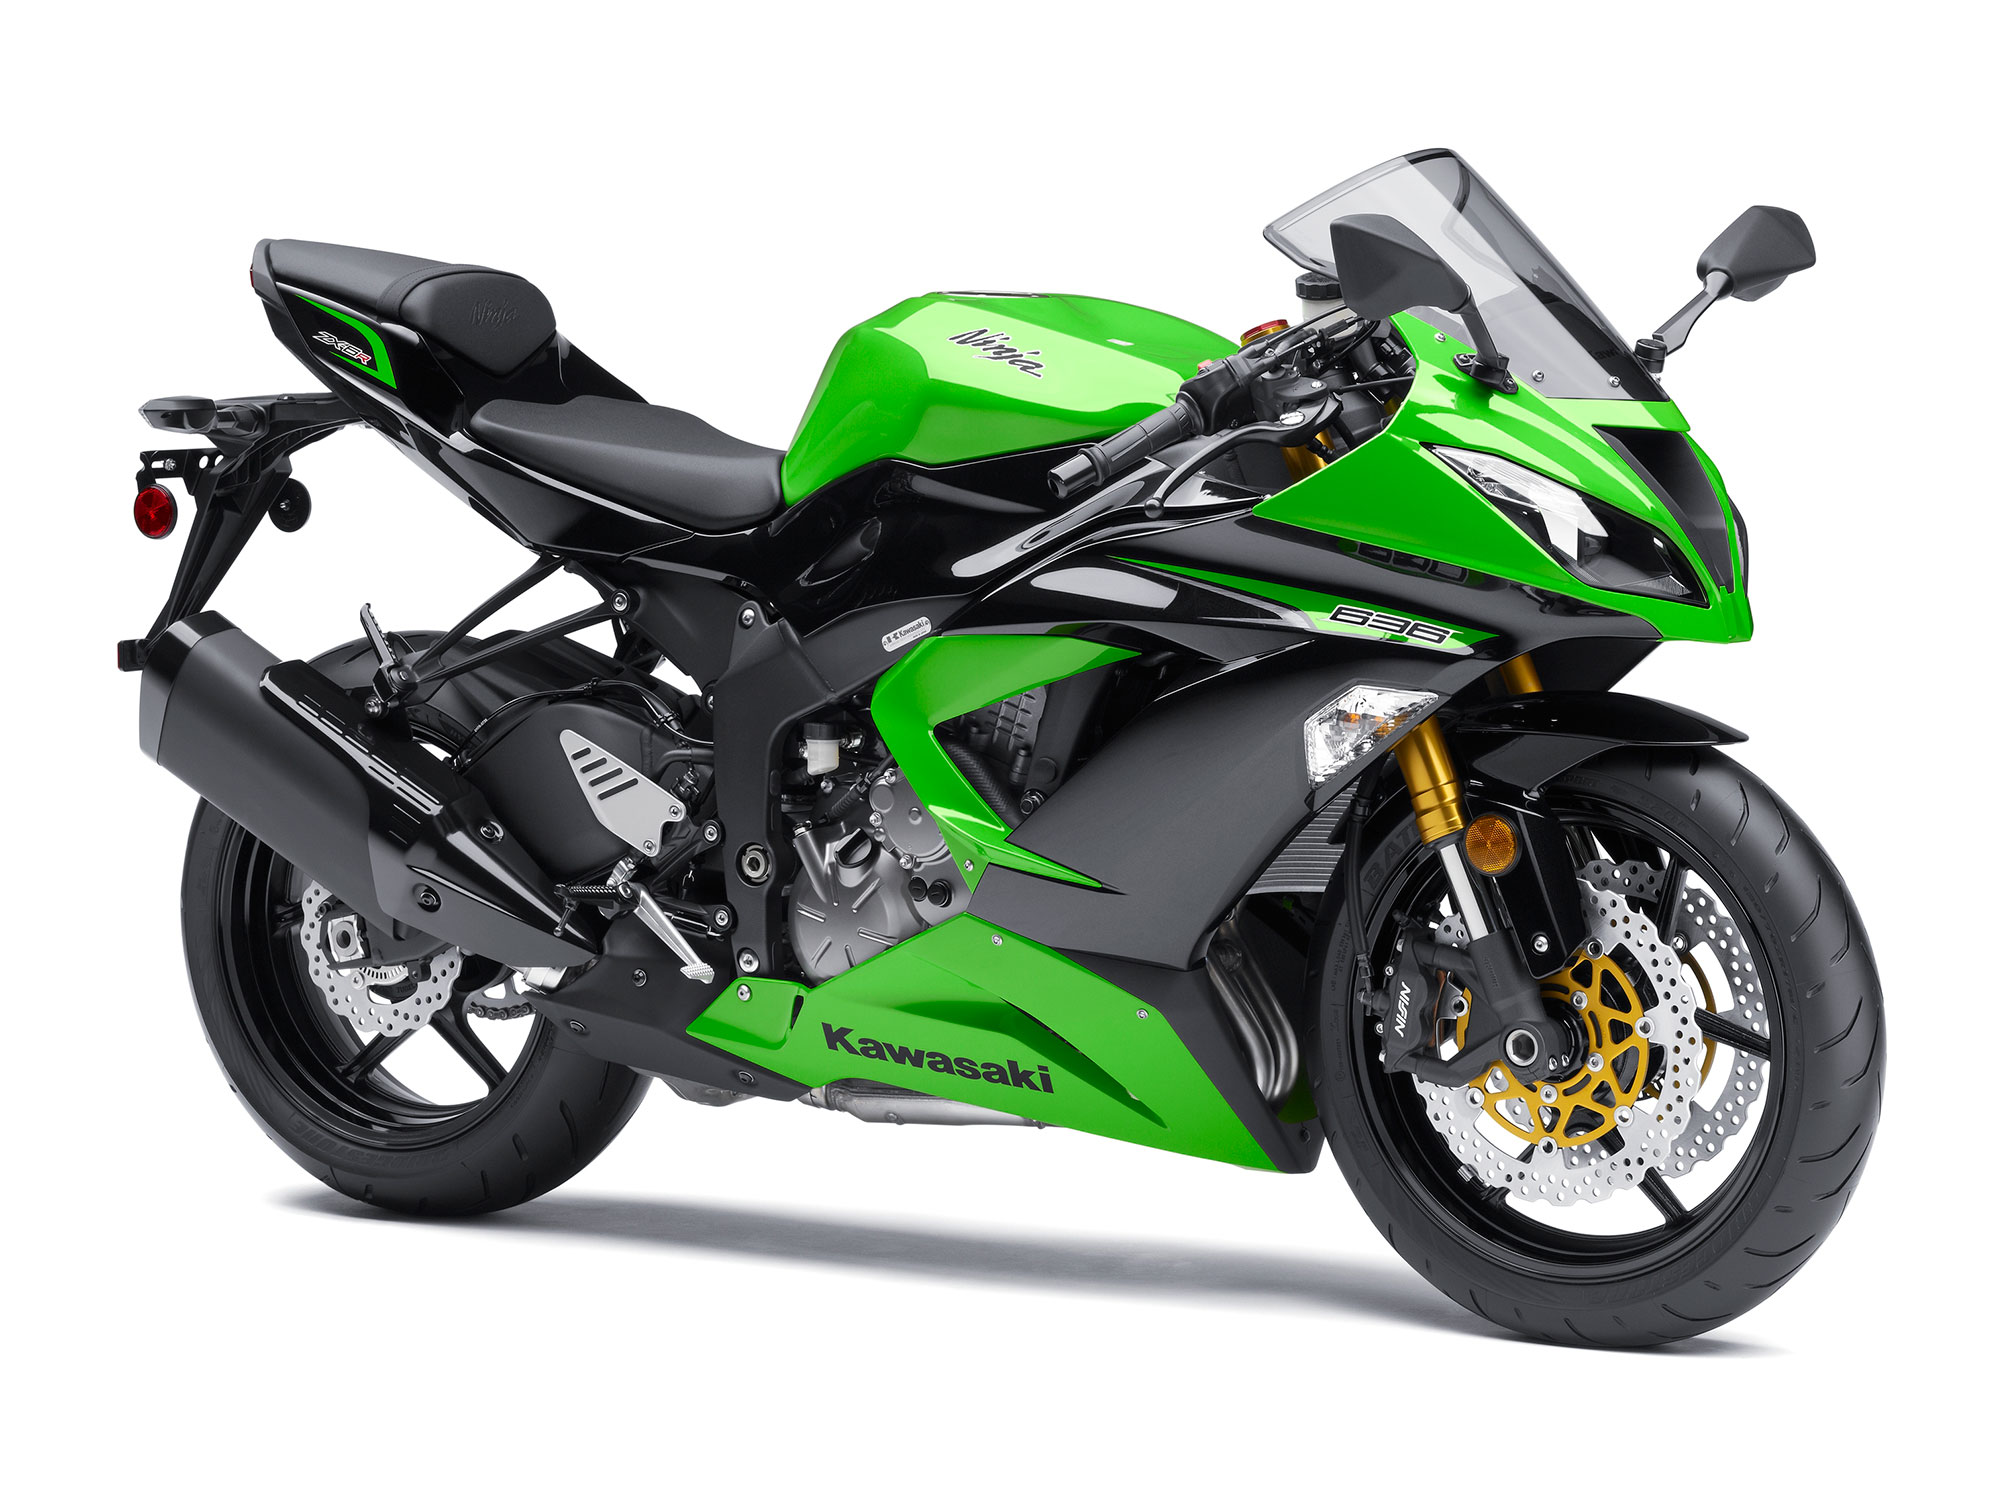 Review of Kawasaki Ninja ZX-6R 636 ABS 2017: pictures